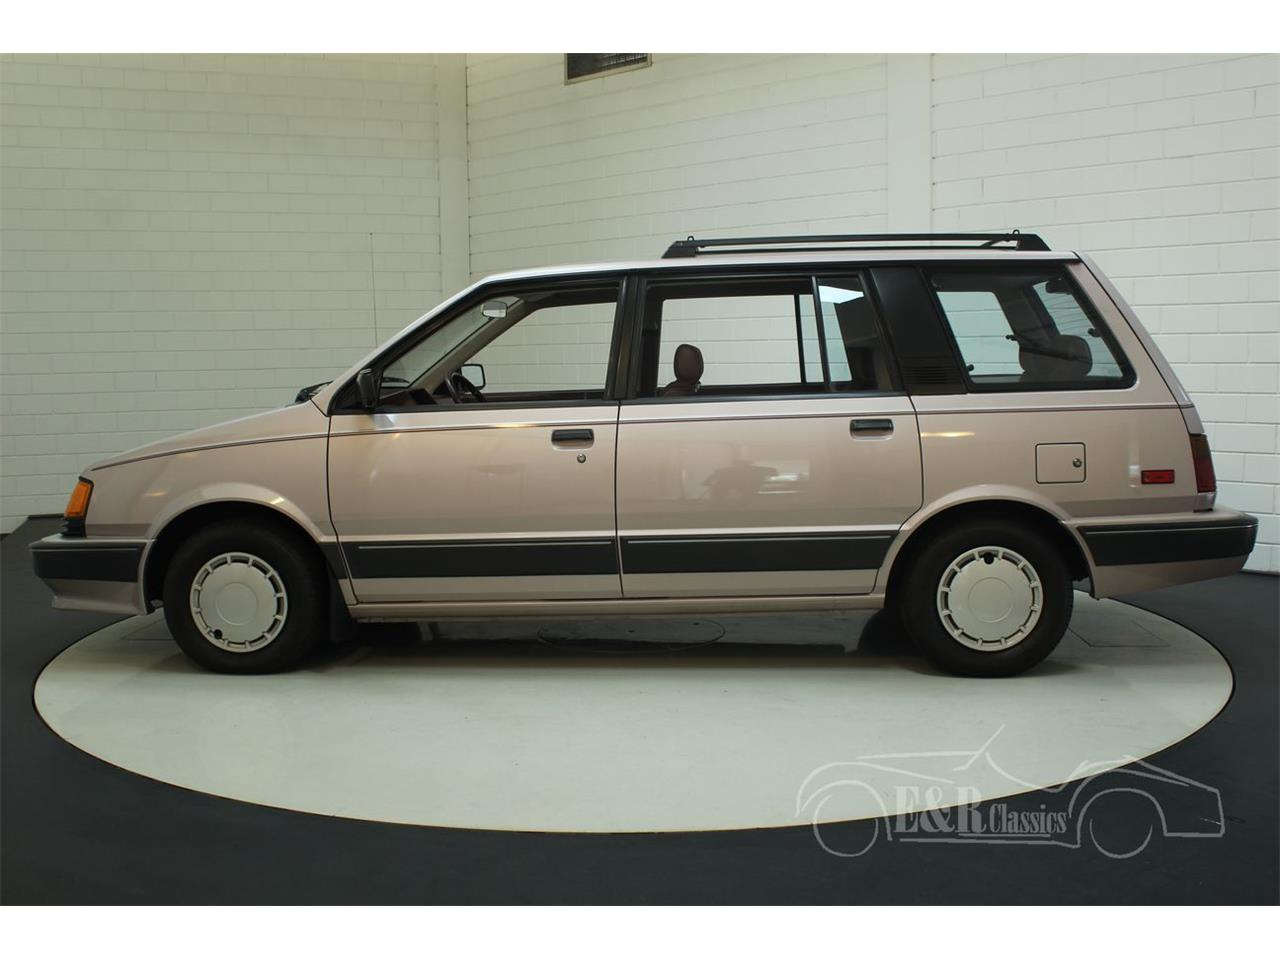 Large Picture of '87 Colt located in Waalwijk [nl] Pays-Bas Offered by E & R Classics - PVV4